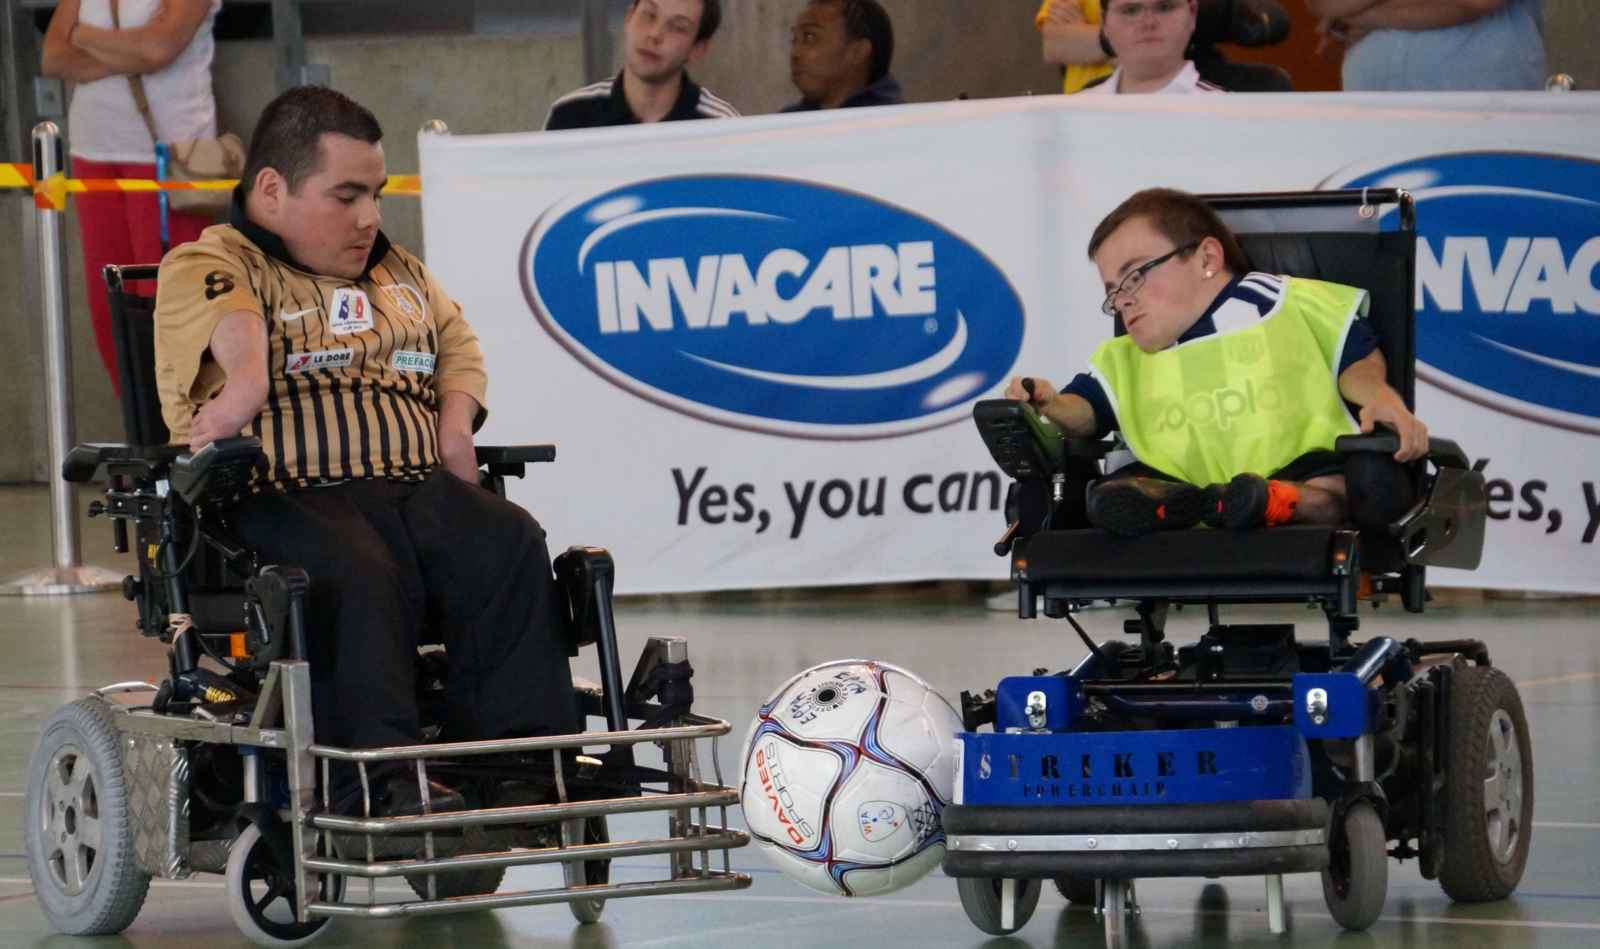 Invacare Renews its Partnership with FIPFA